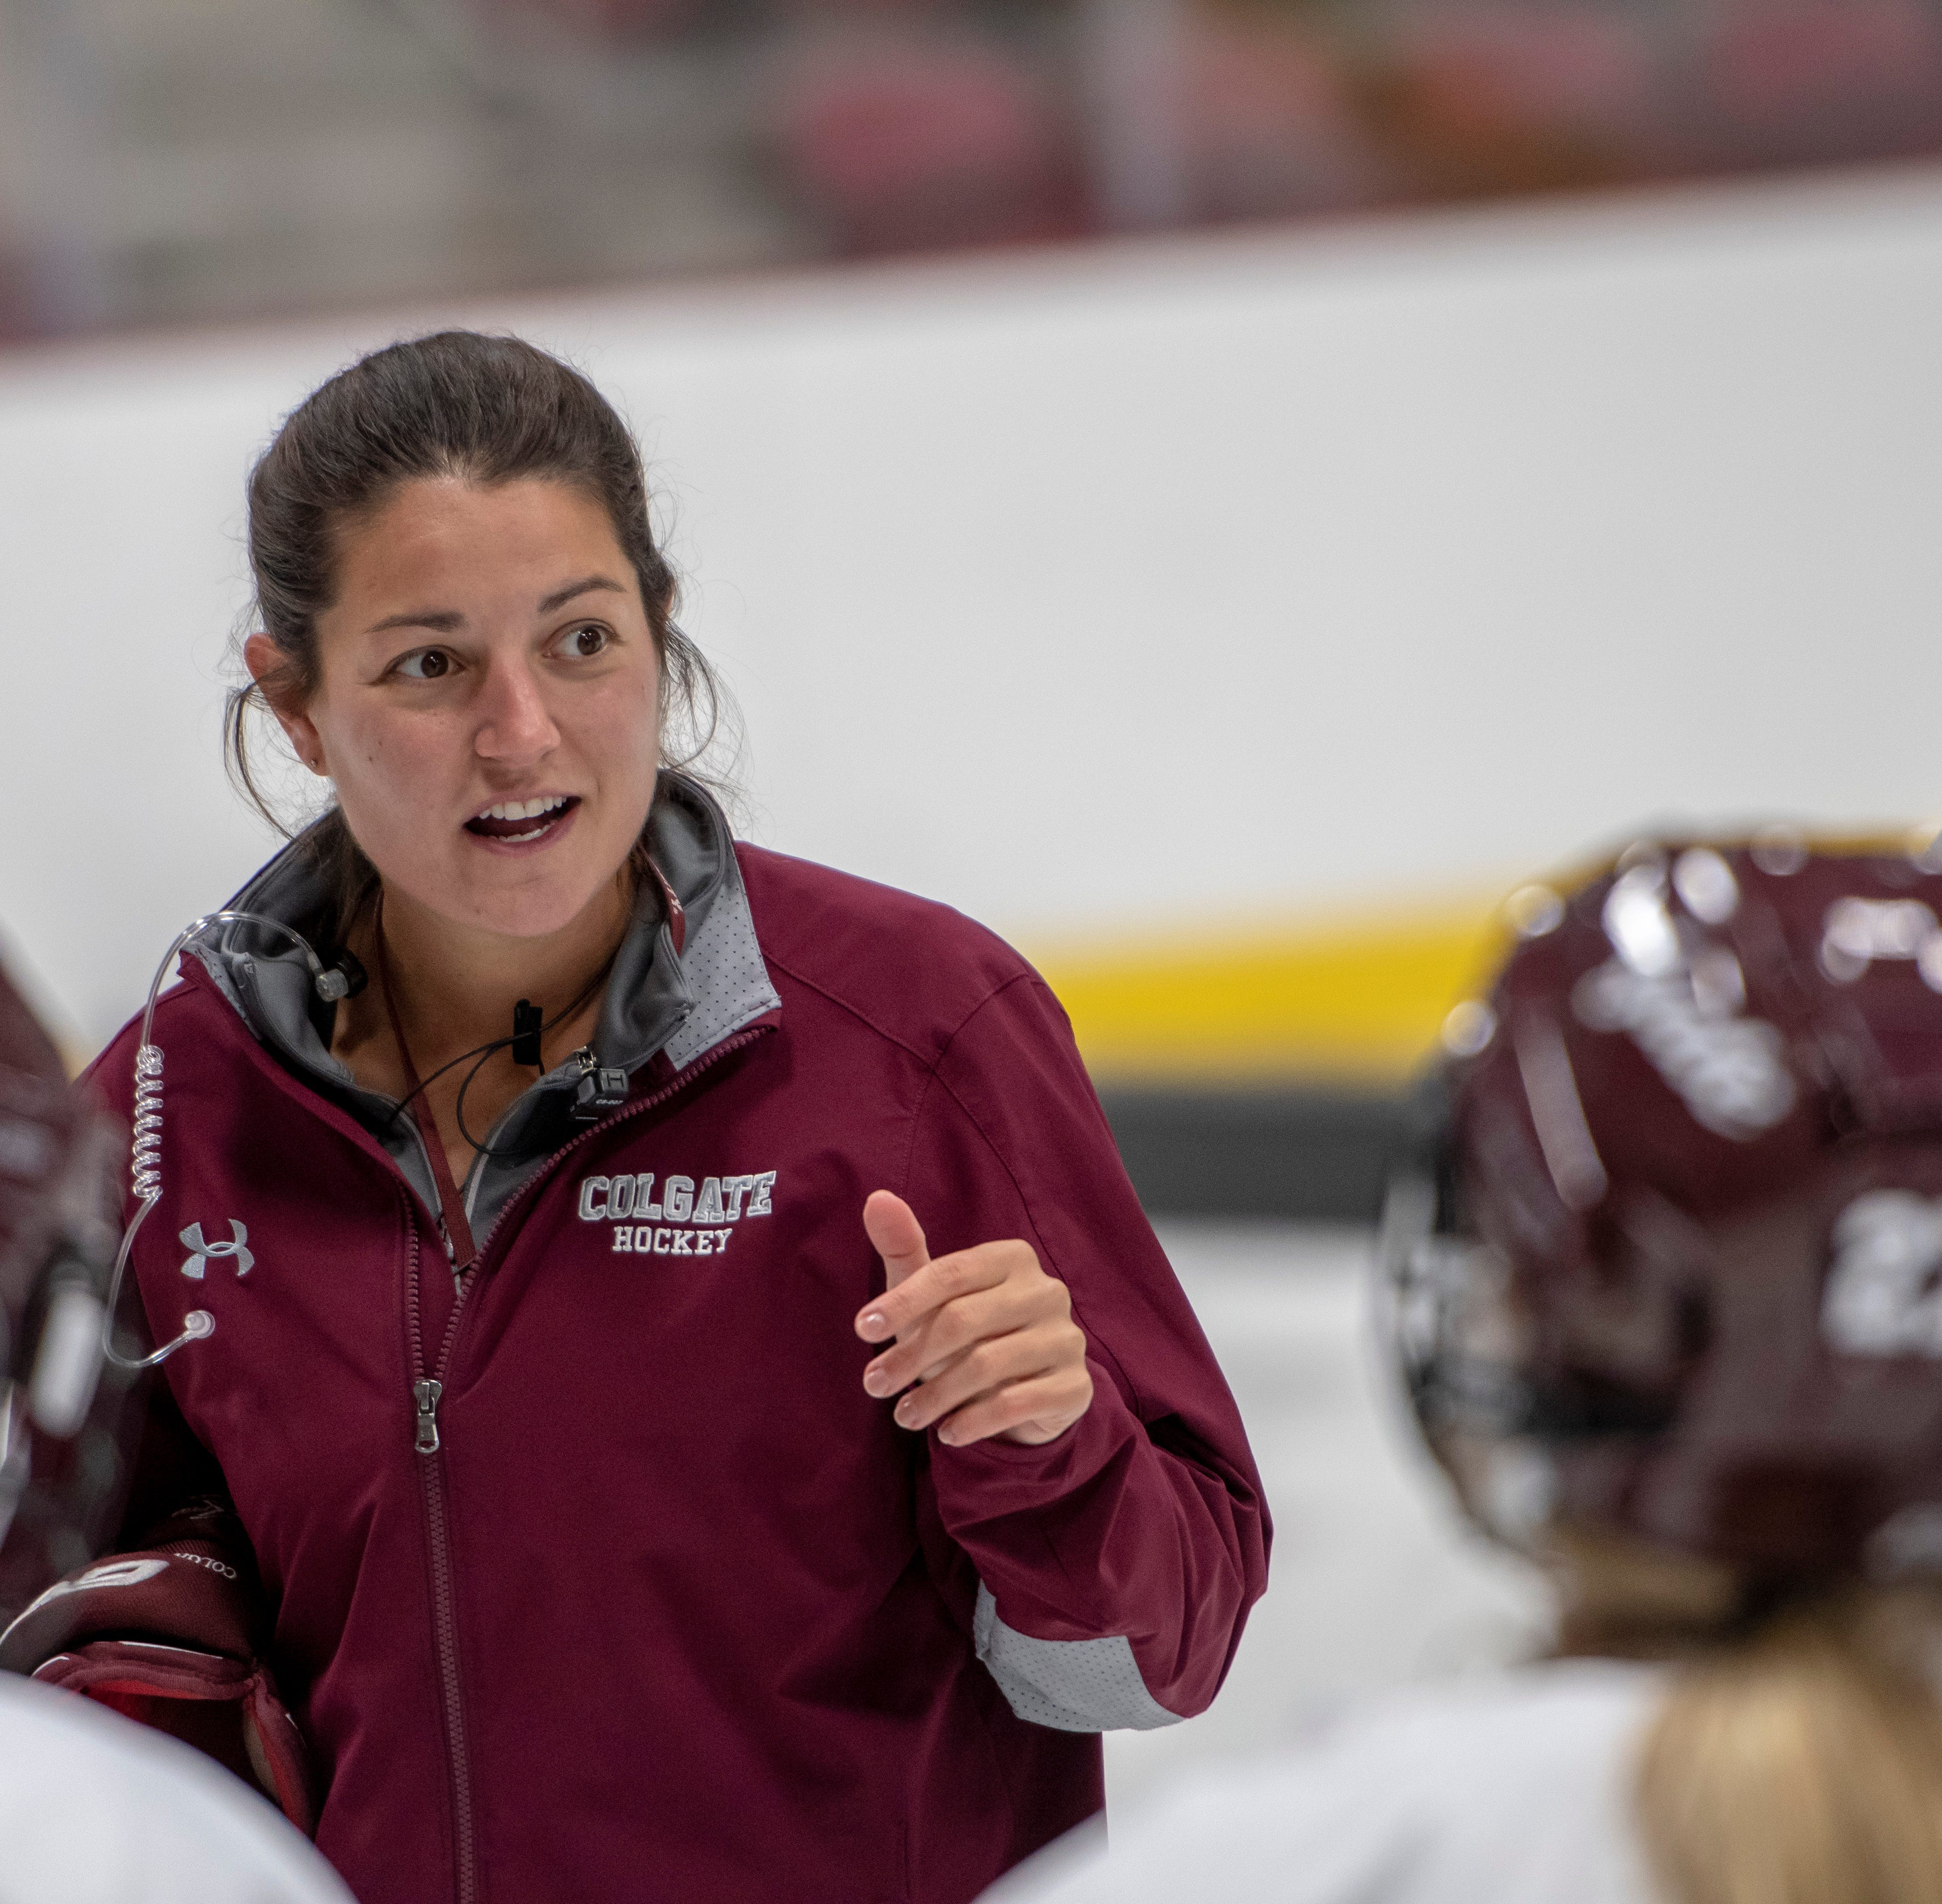 Former Norwich player Sophie Leclerc directs Colgate players during a practice.